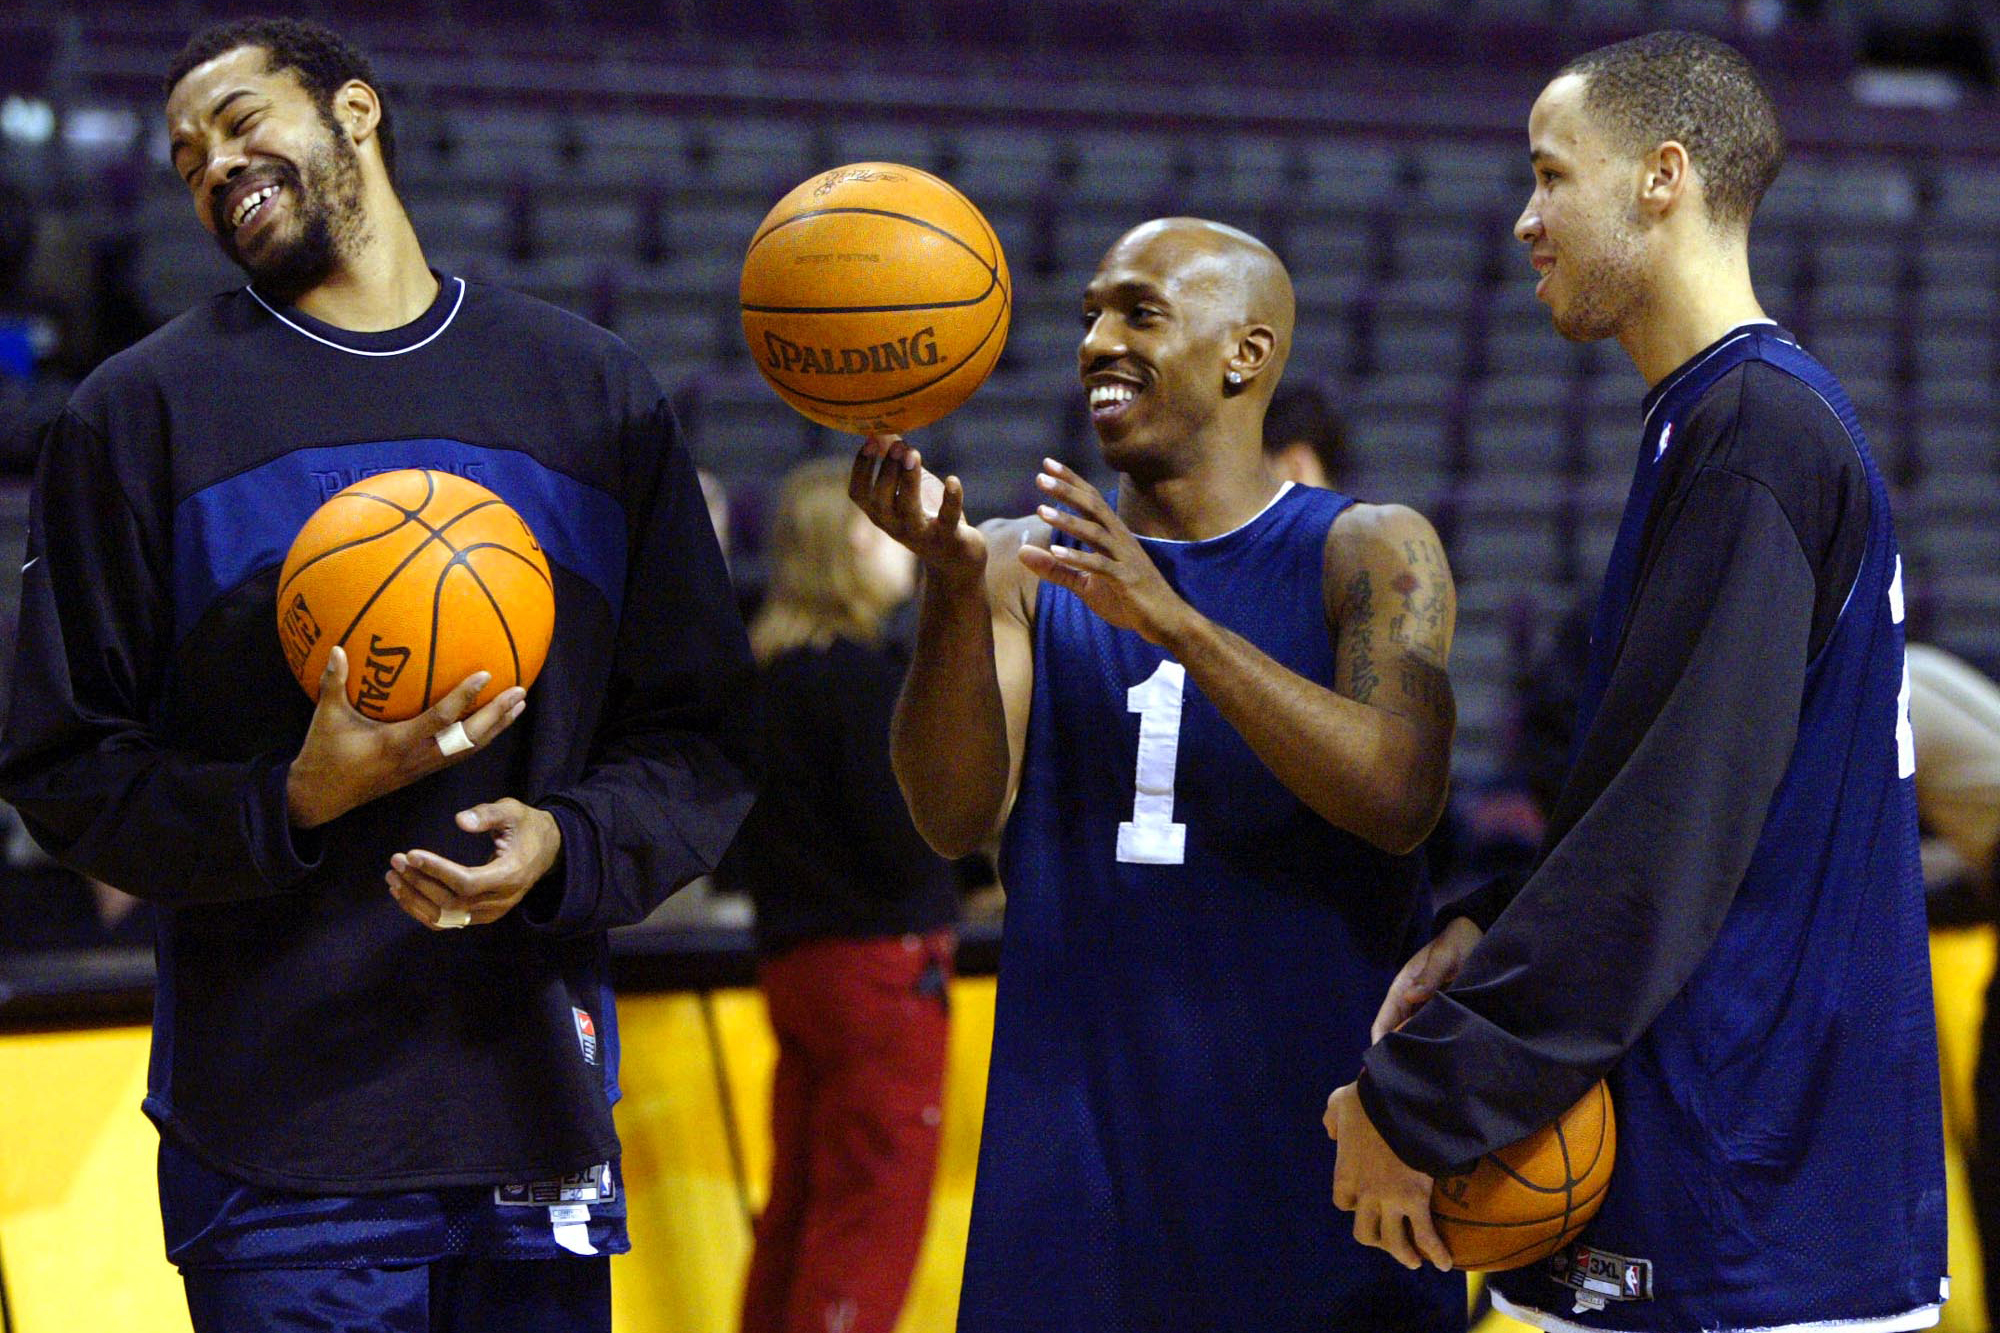 Detroit Pistons Rasheed Wallace, left, Chauncey Billups (1) and Tayshaun Prince, right, enjoy a laugh at practice at the Palace in Auburn Hills, Mich. Friday, June 11, 2004.